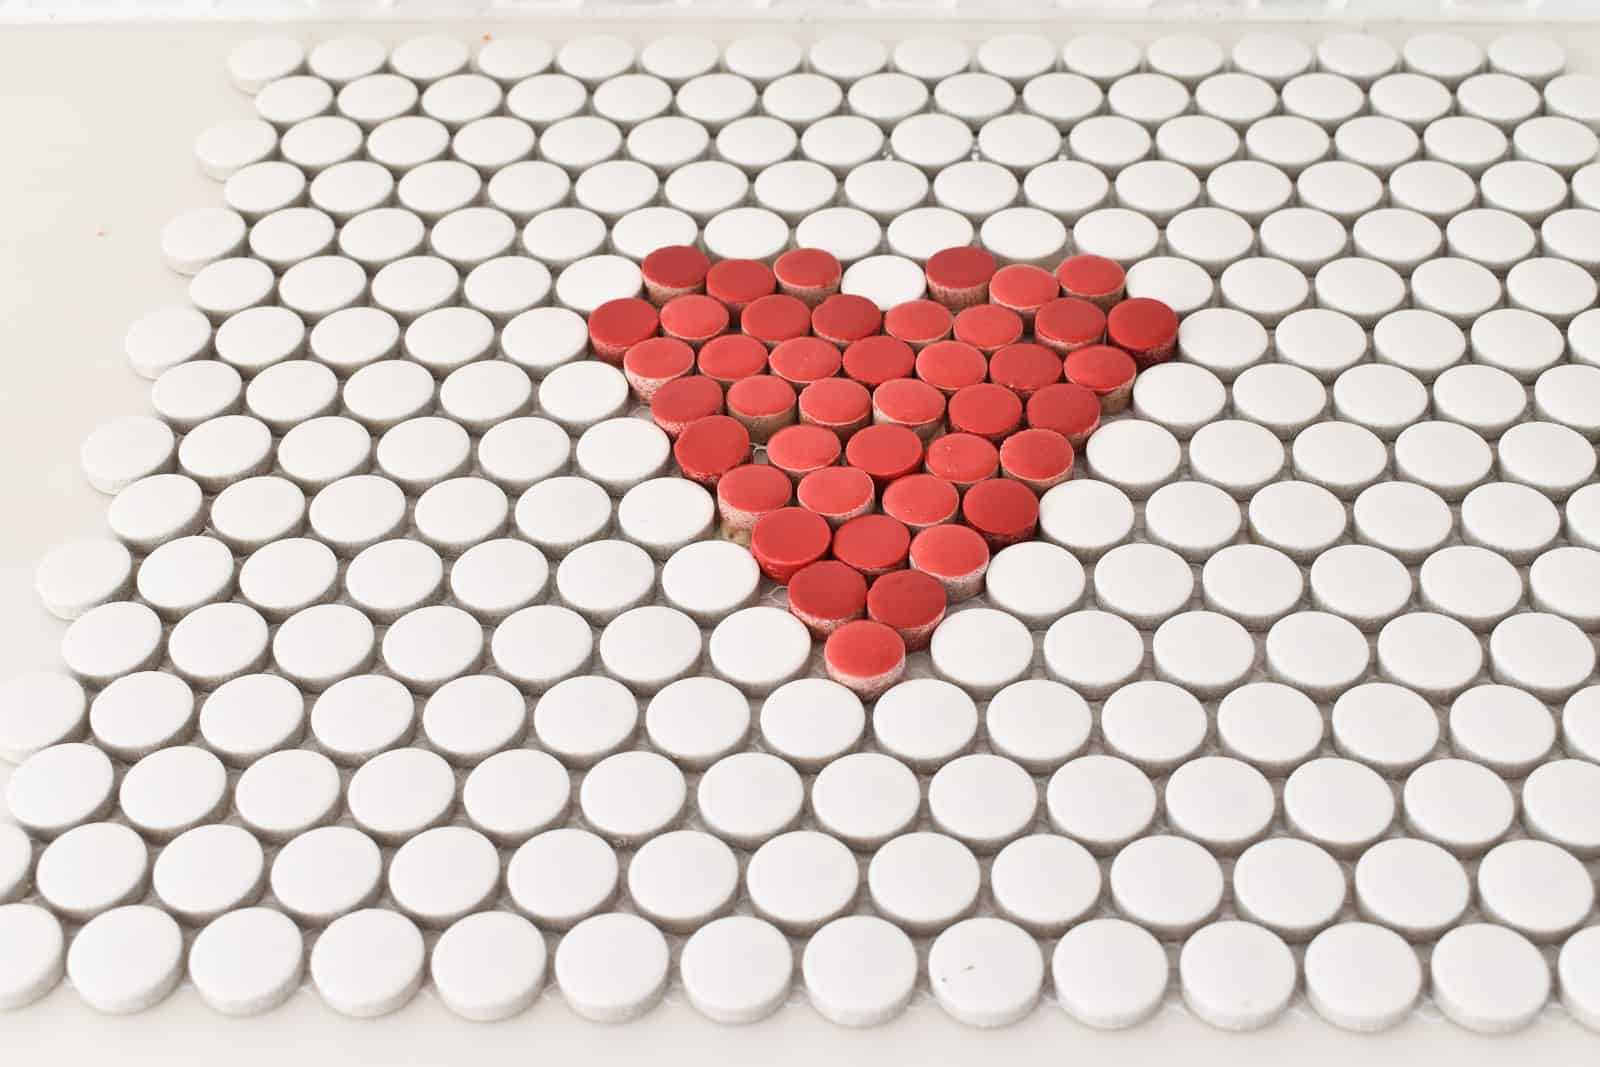 place red tiles into the heart